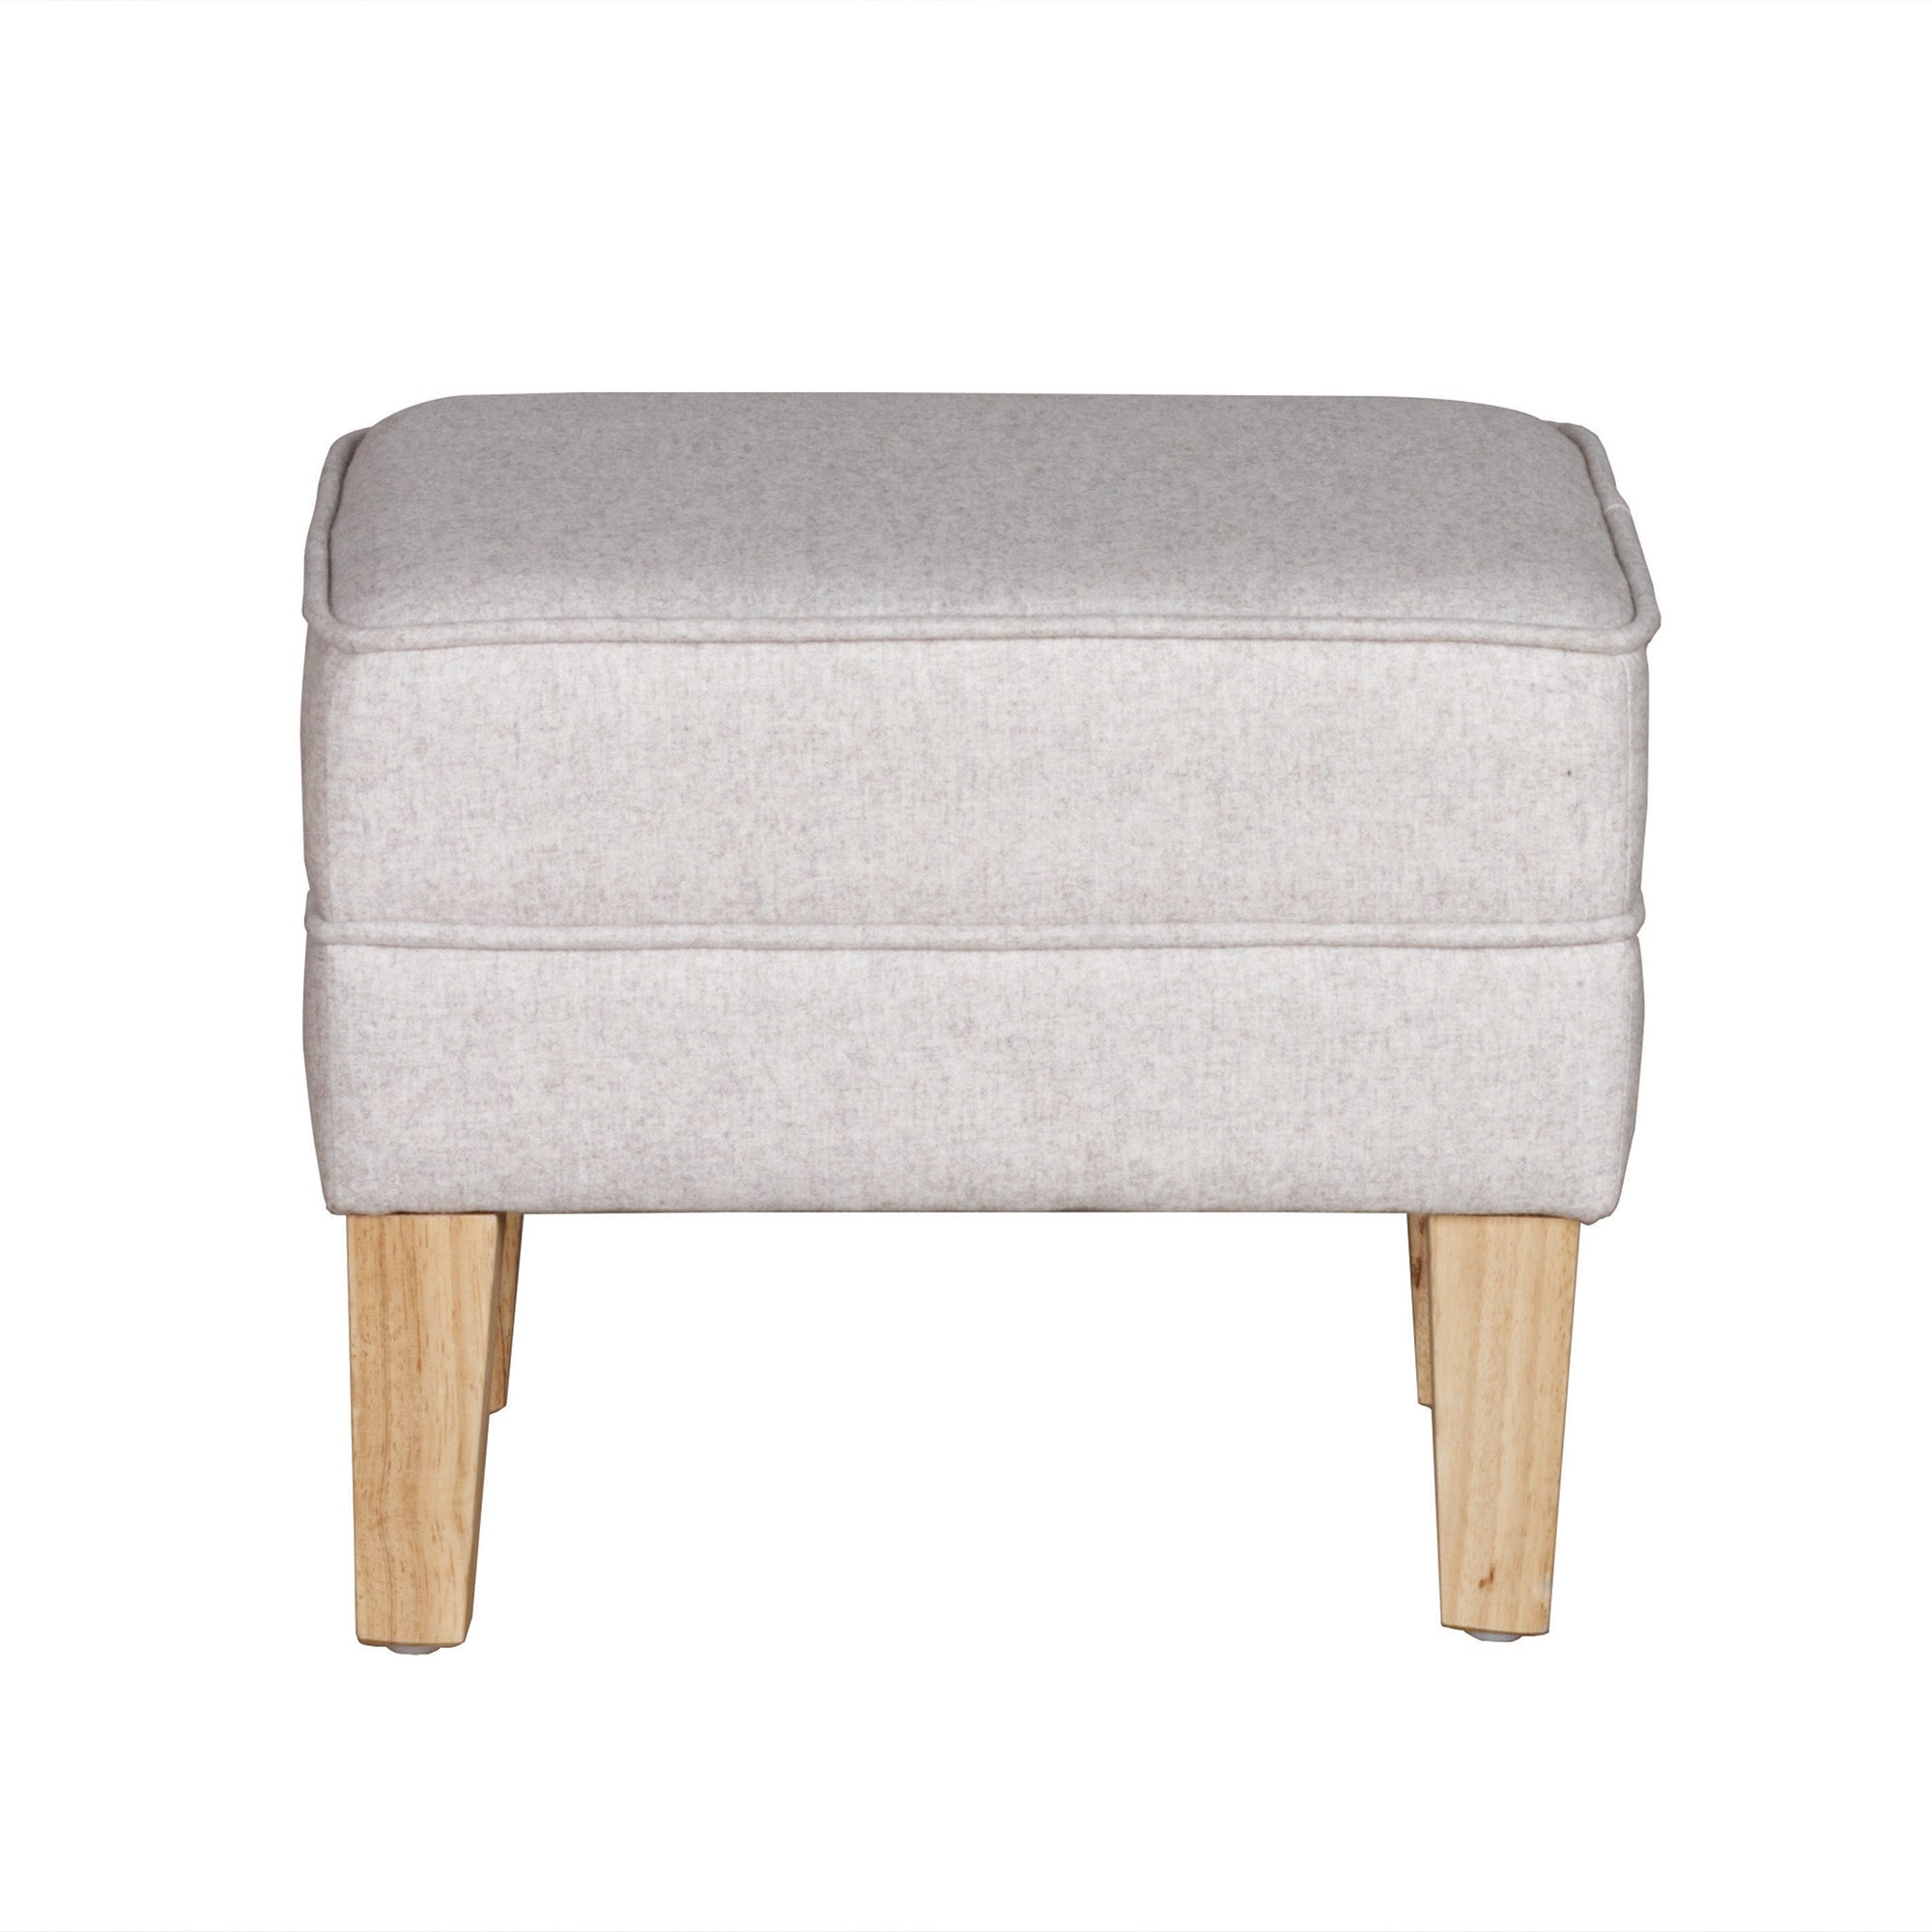 Cream Madrid Footstool